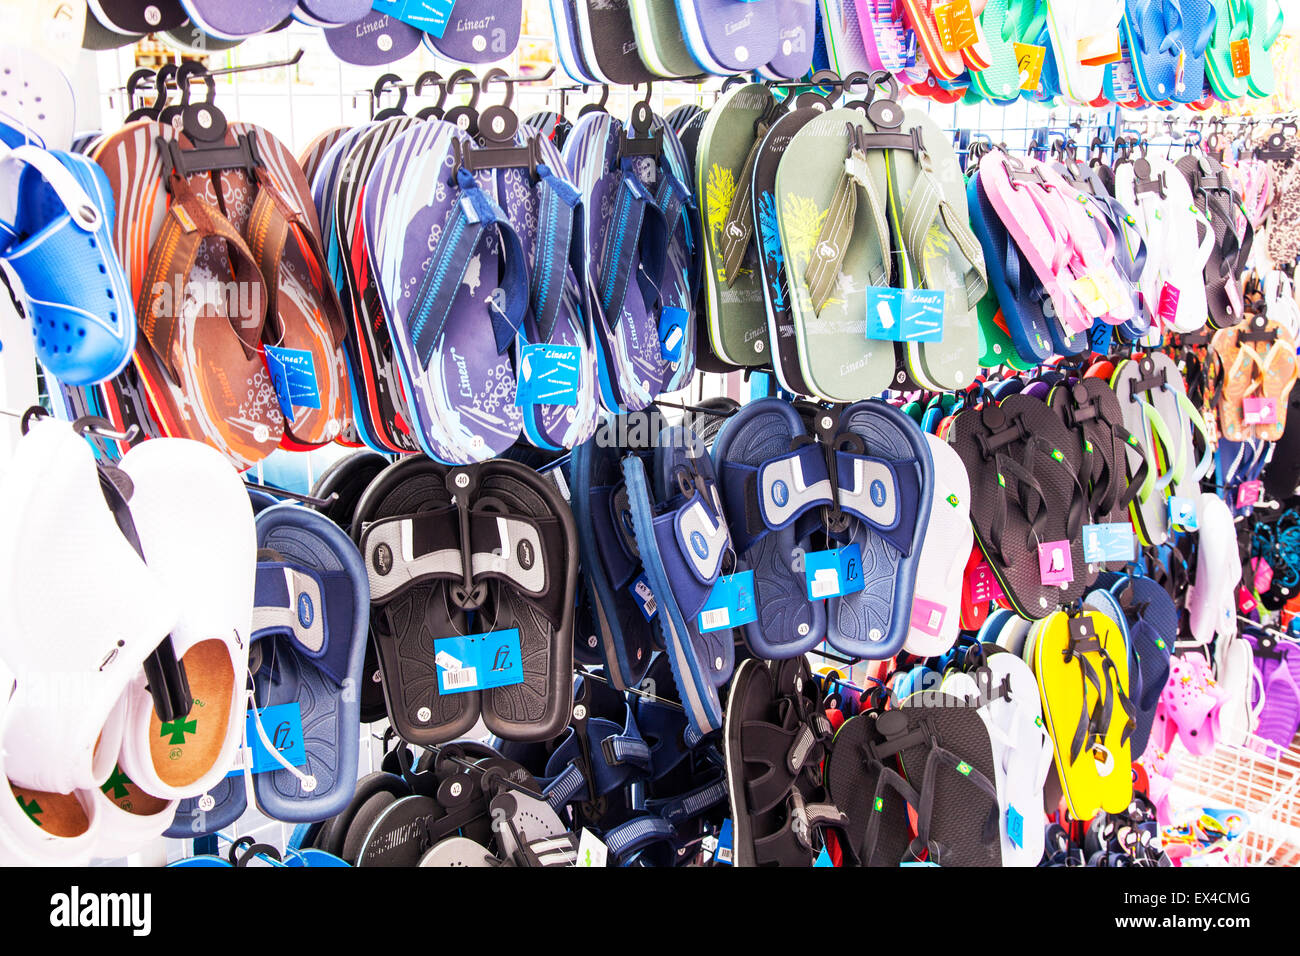 Flip flops footwear summer shoes shop display stand store - Stock Image